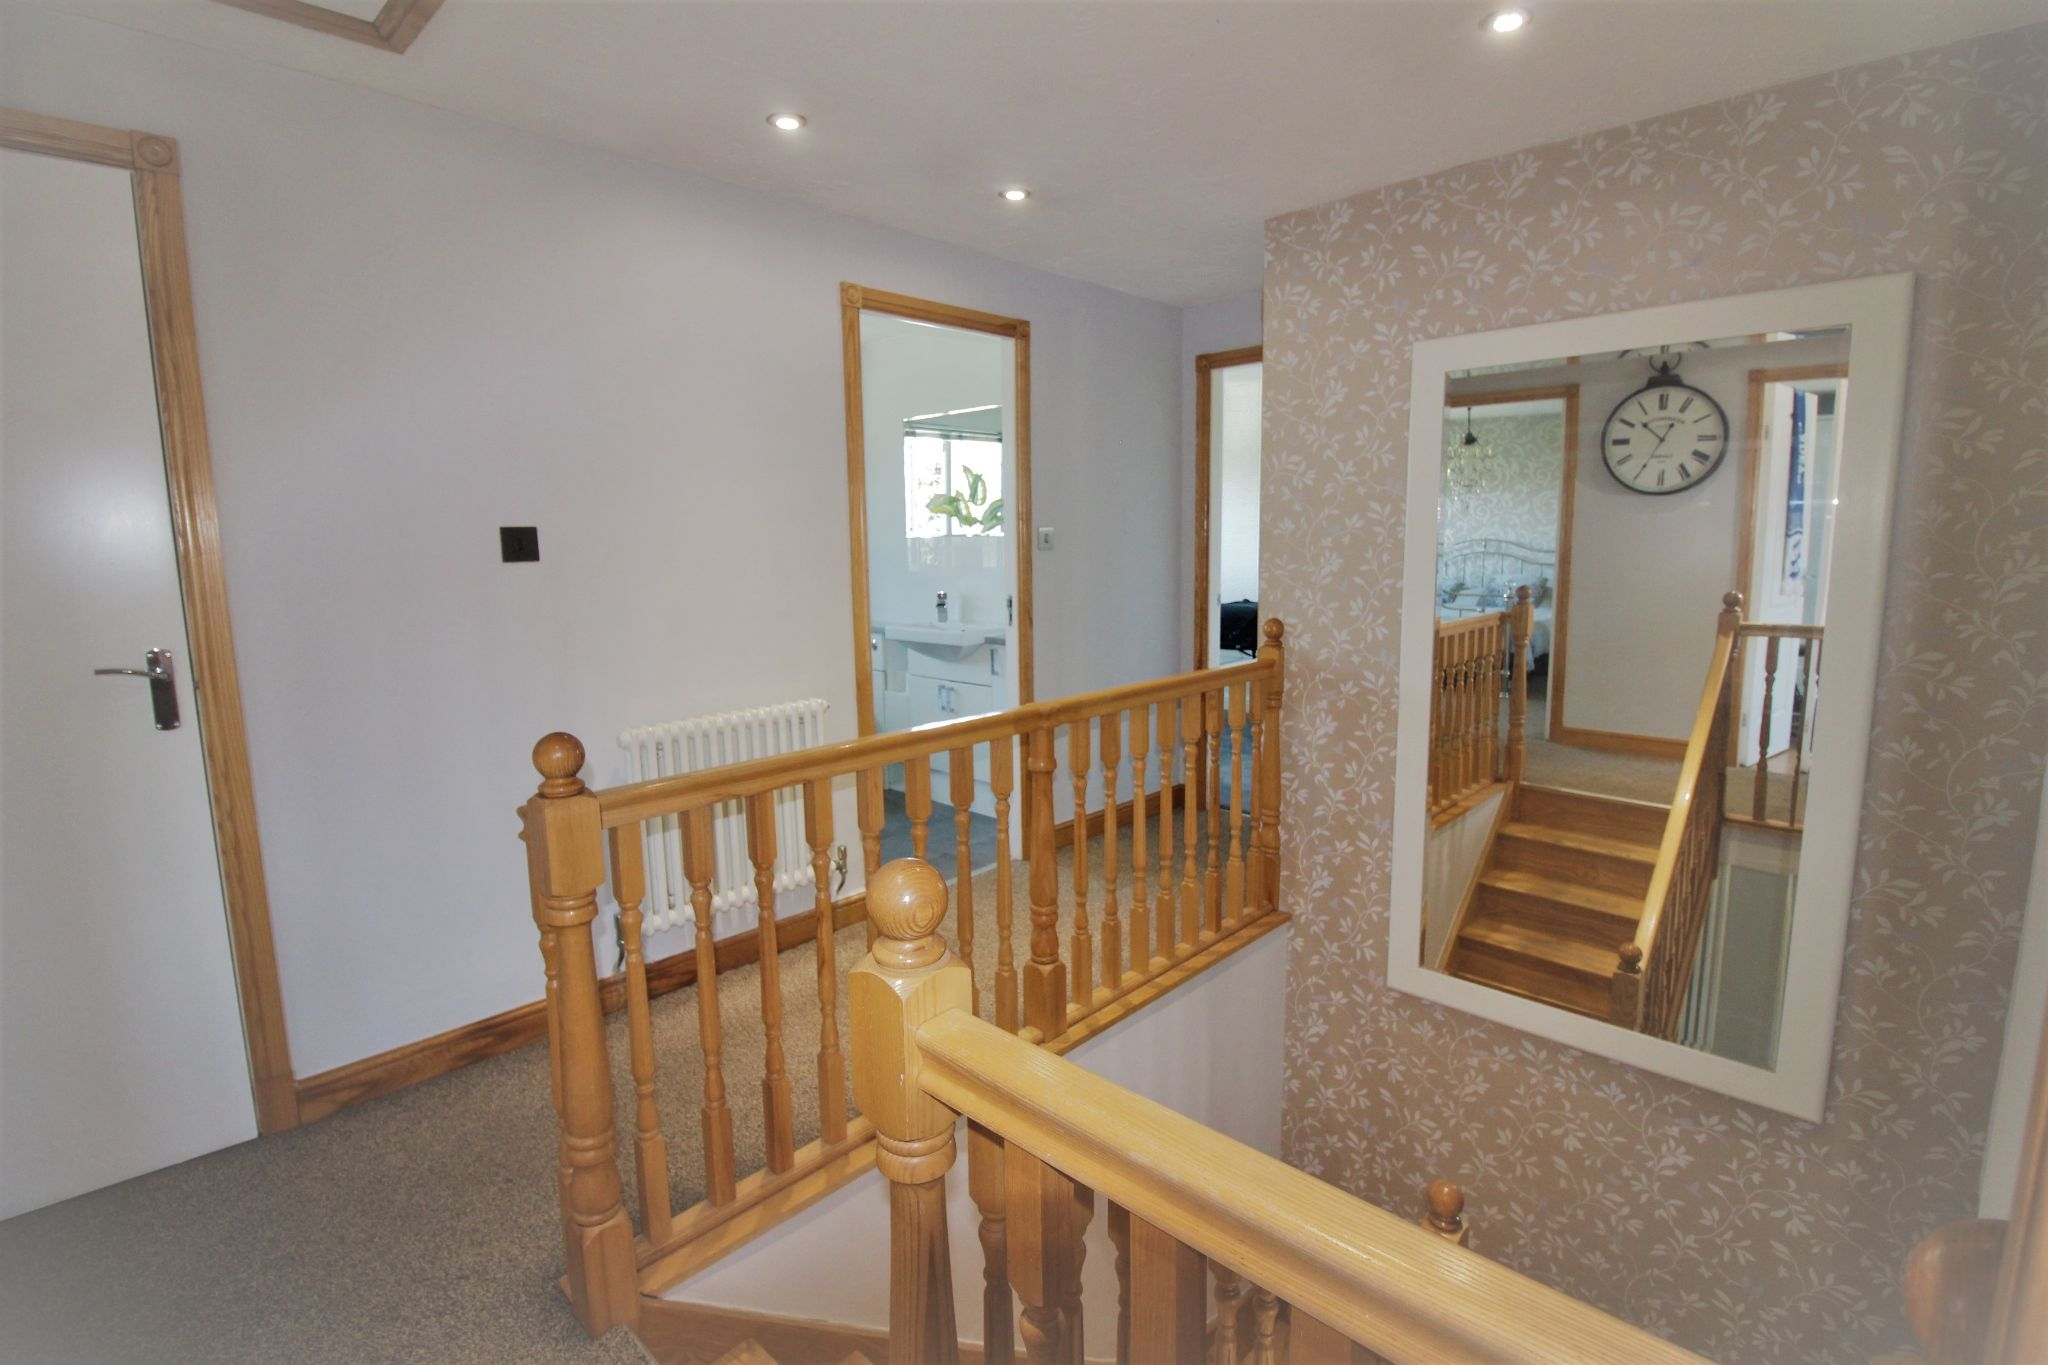 6 bedroom detached house For Sale in Solihull - Photograph 17.